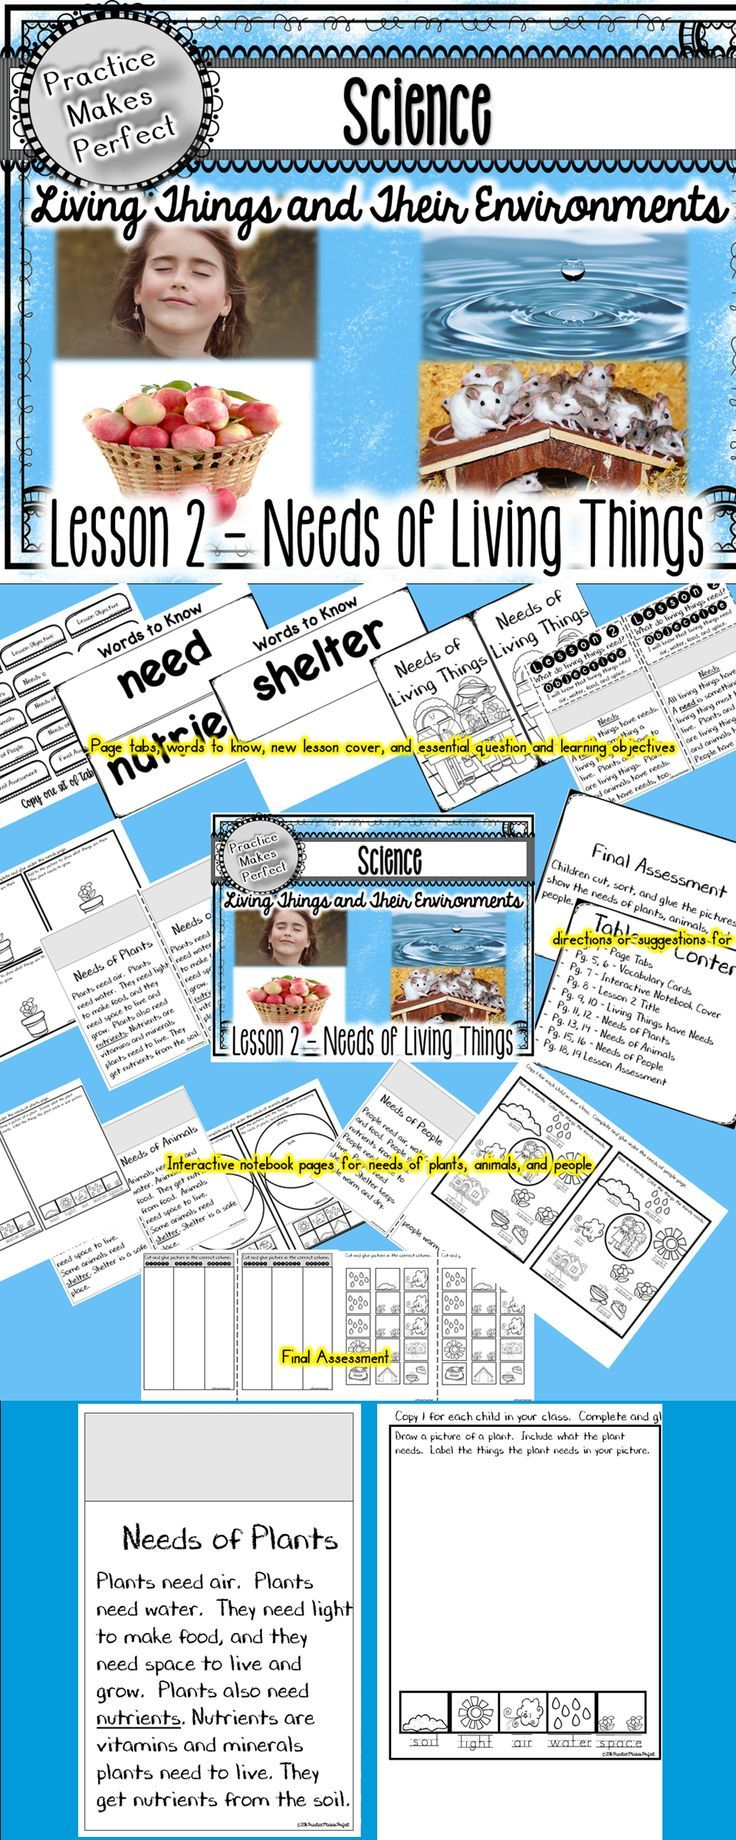 Primary science resource about the needs of living things. Lesson 2 in living things and their environments.: